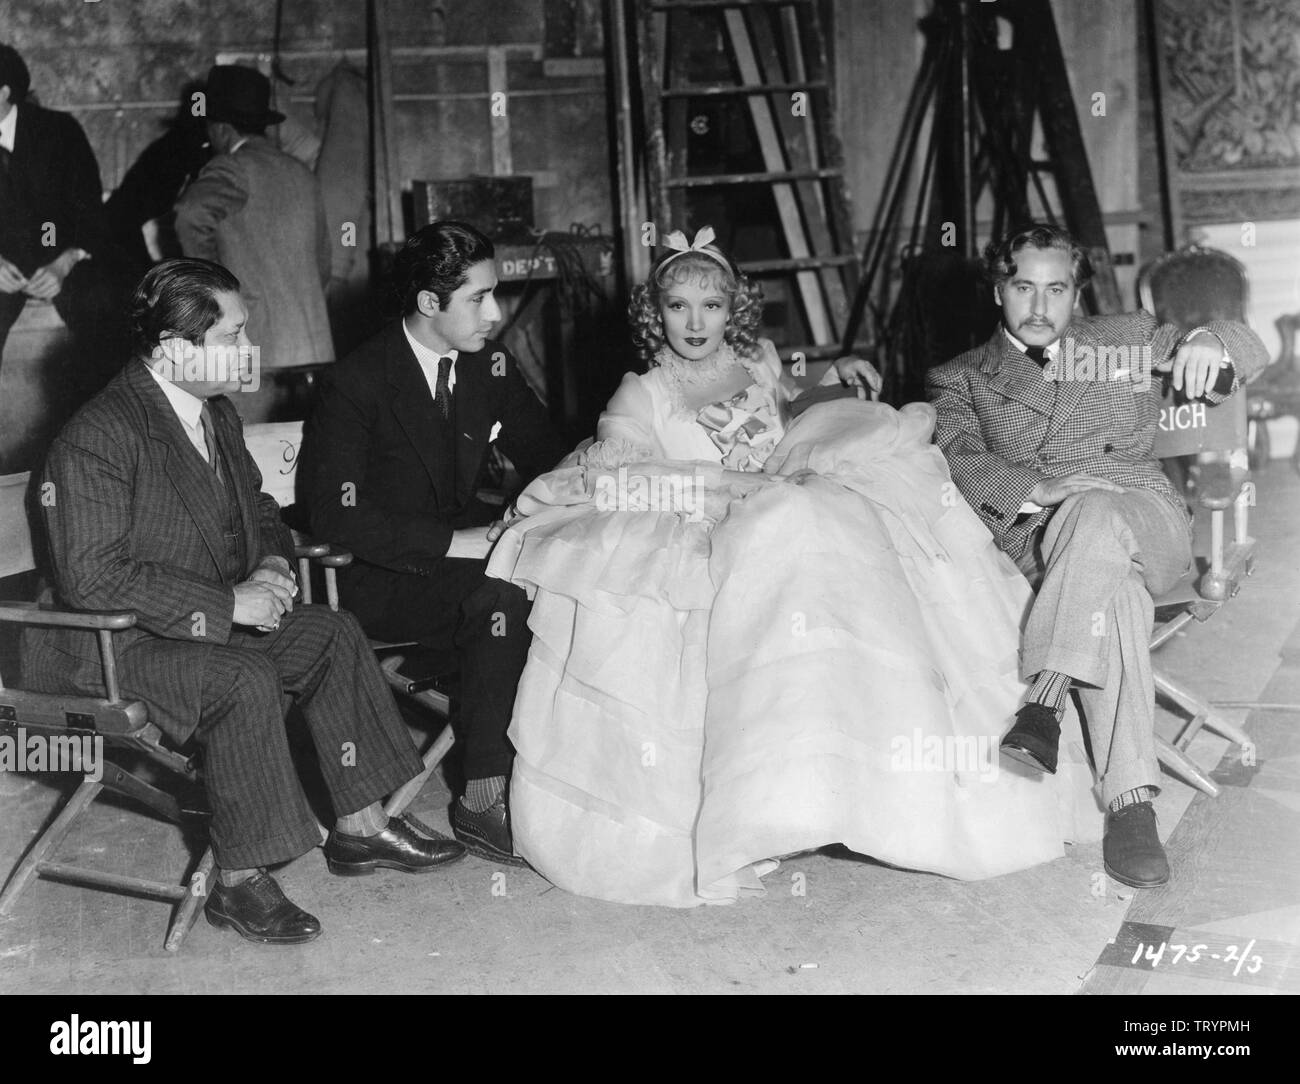 MARLENE DIETRICH as Catherine the Great of Russia and director Josef von STERNBERG on set candid filming THE SCARLET EMPRESS 1934 Paramount Pictures - Stock Image